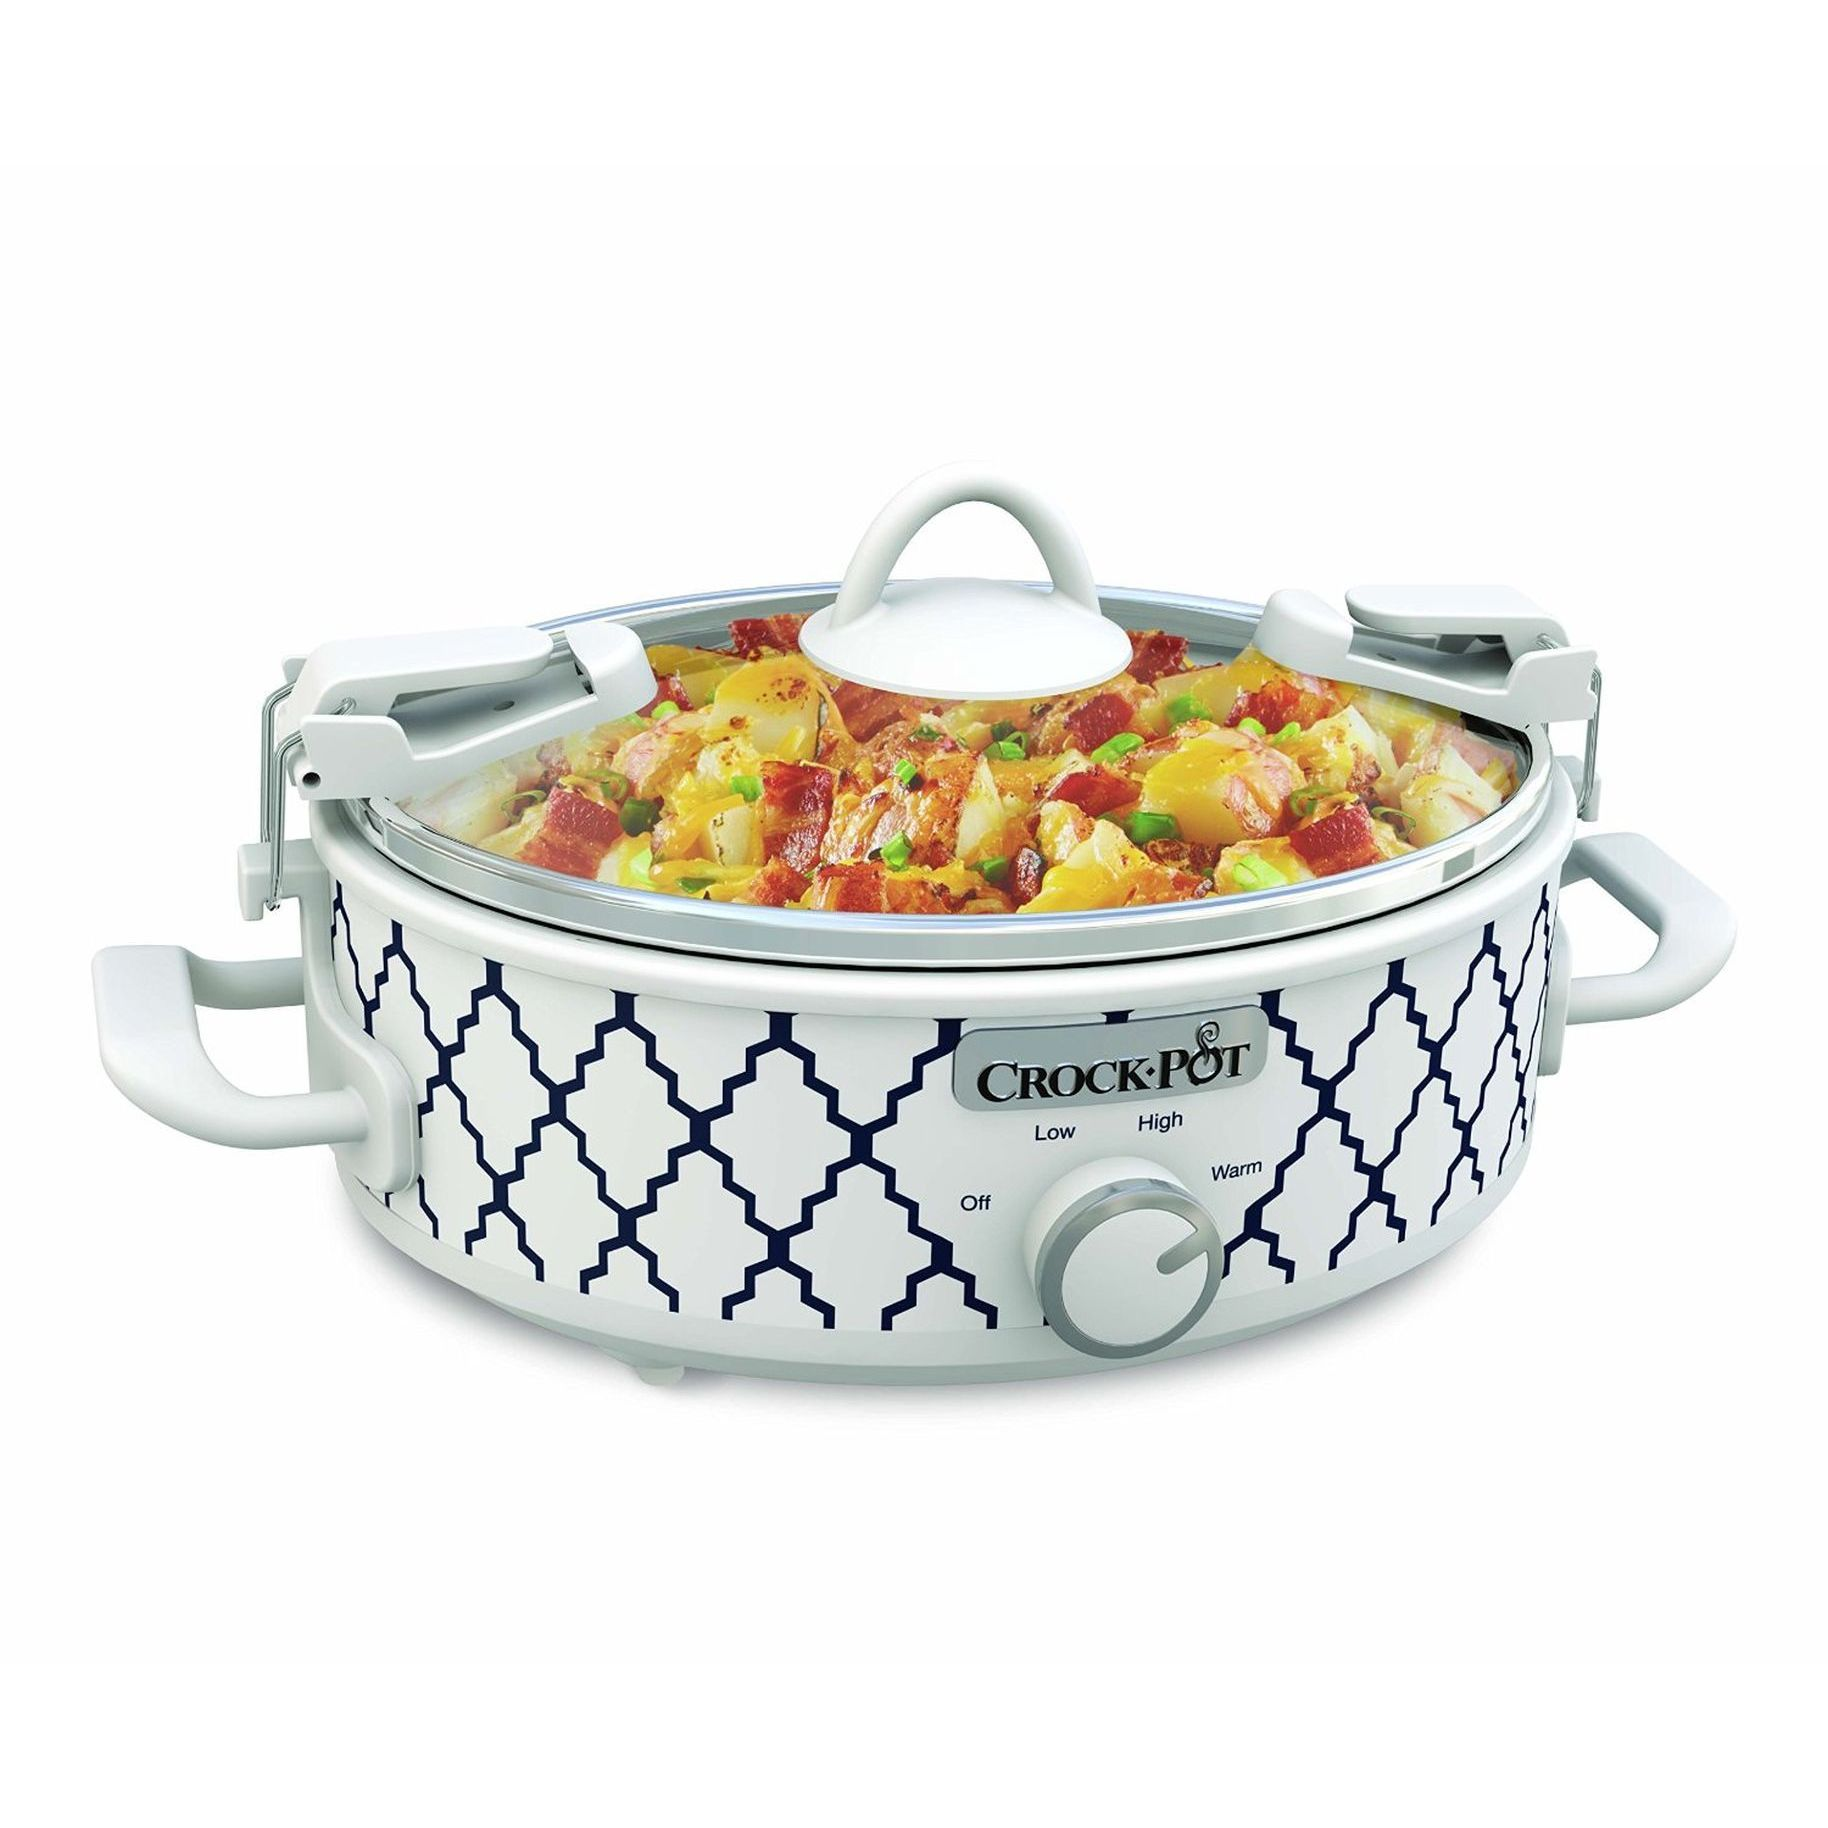 Jarden Crock-Pot 2.5 Quart Mini Casserole Slow Cooker, White